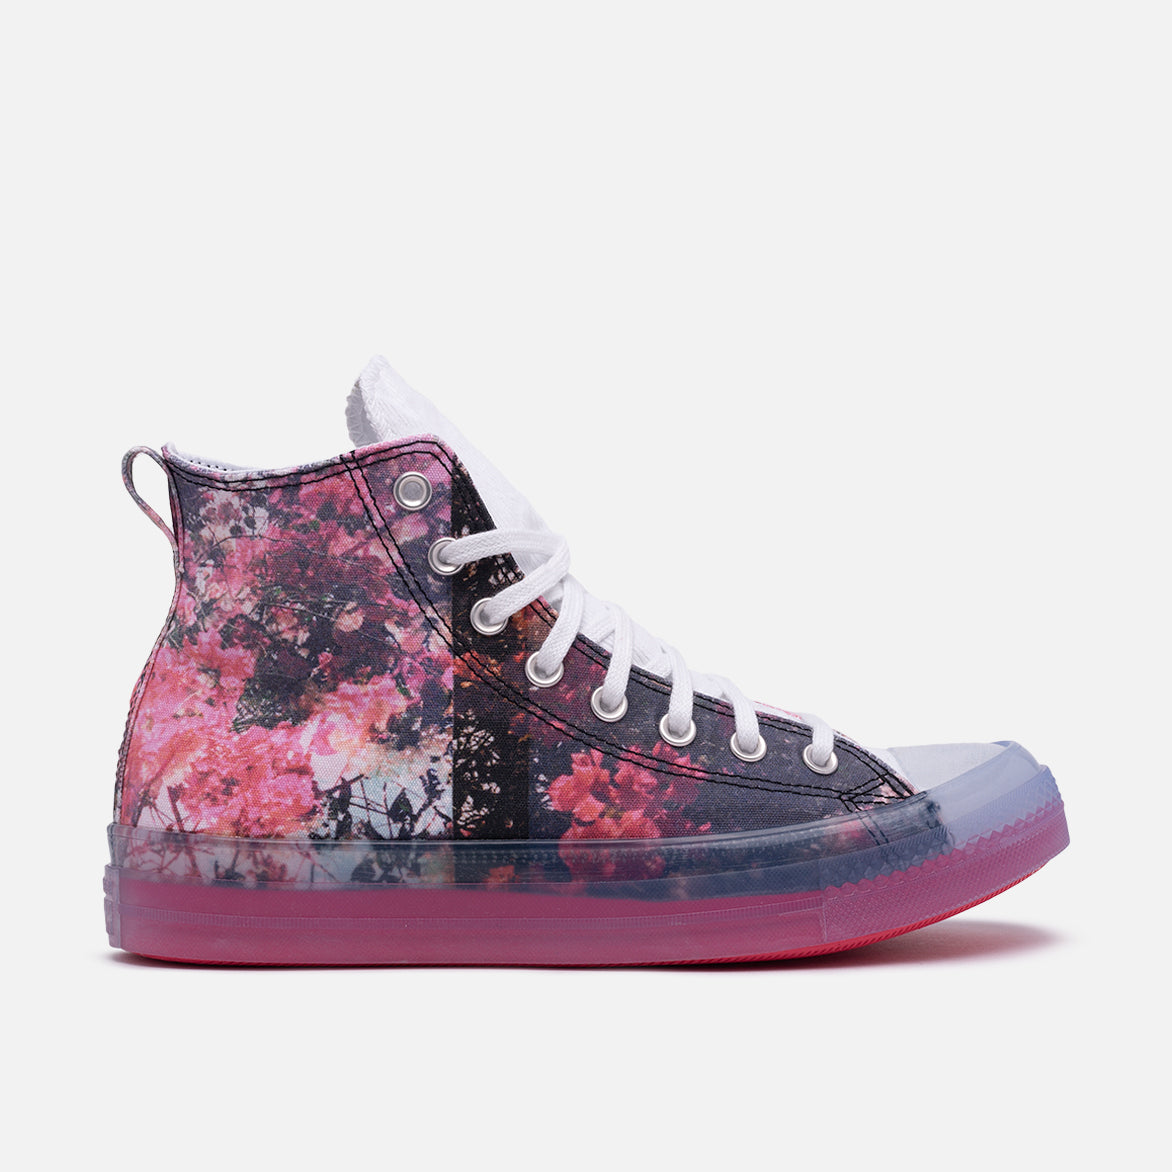 SHANIQWA JARVIS X CONVERSE CHUCK TAYLOR CX - TEABERRY / WHITE / BLACK